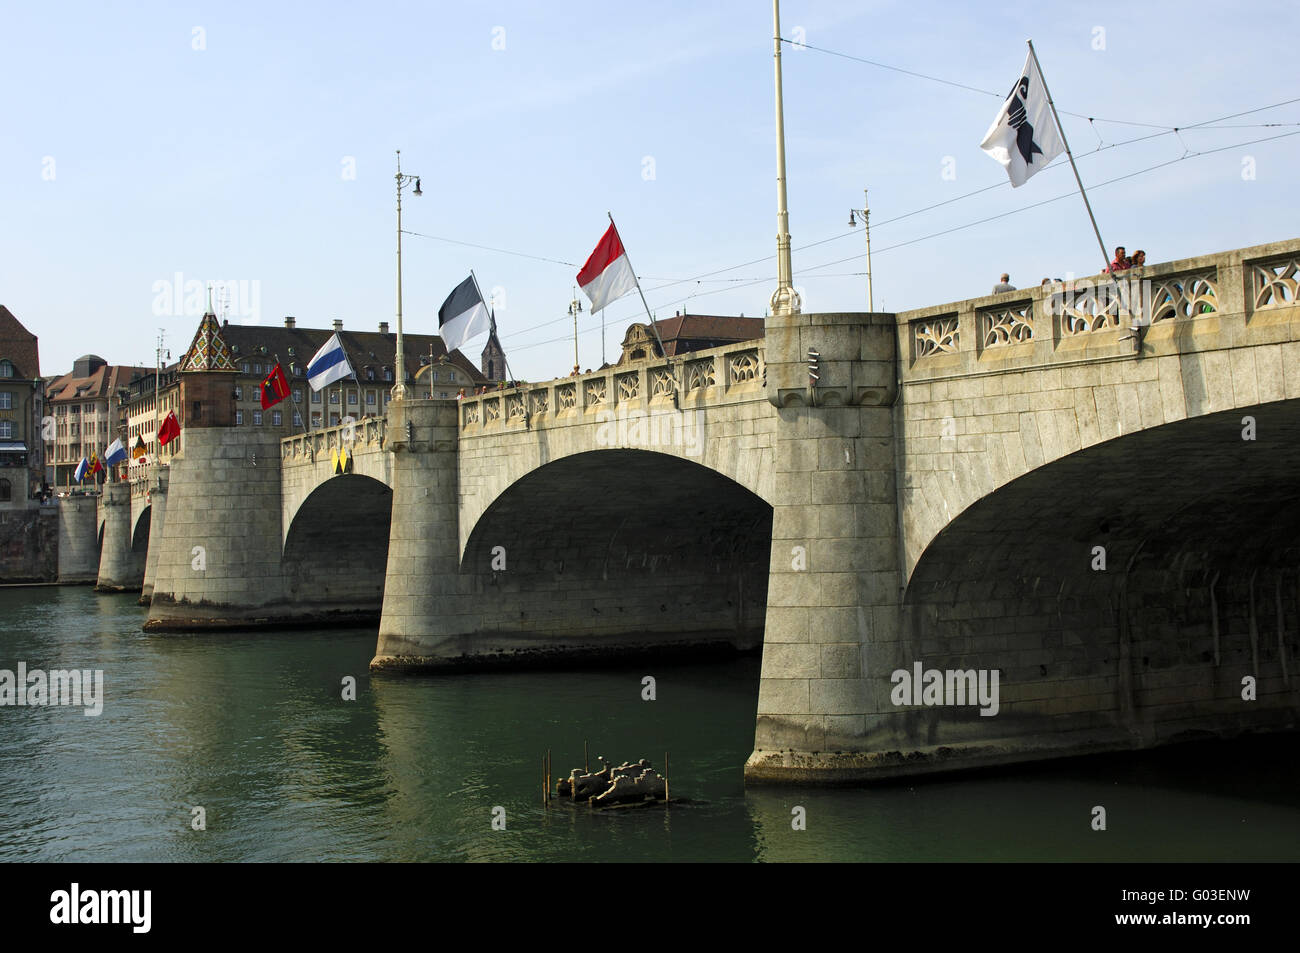 Flags Of The Swiss Cantons At A Rhine River Bridge Stock Photo - Swiss river to the rhine